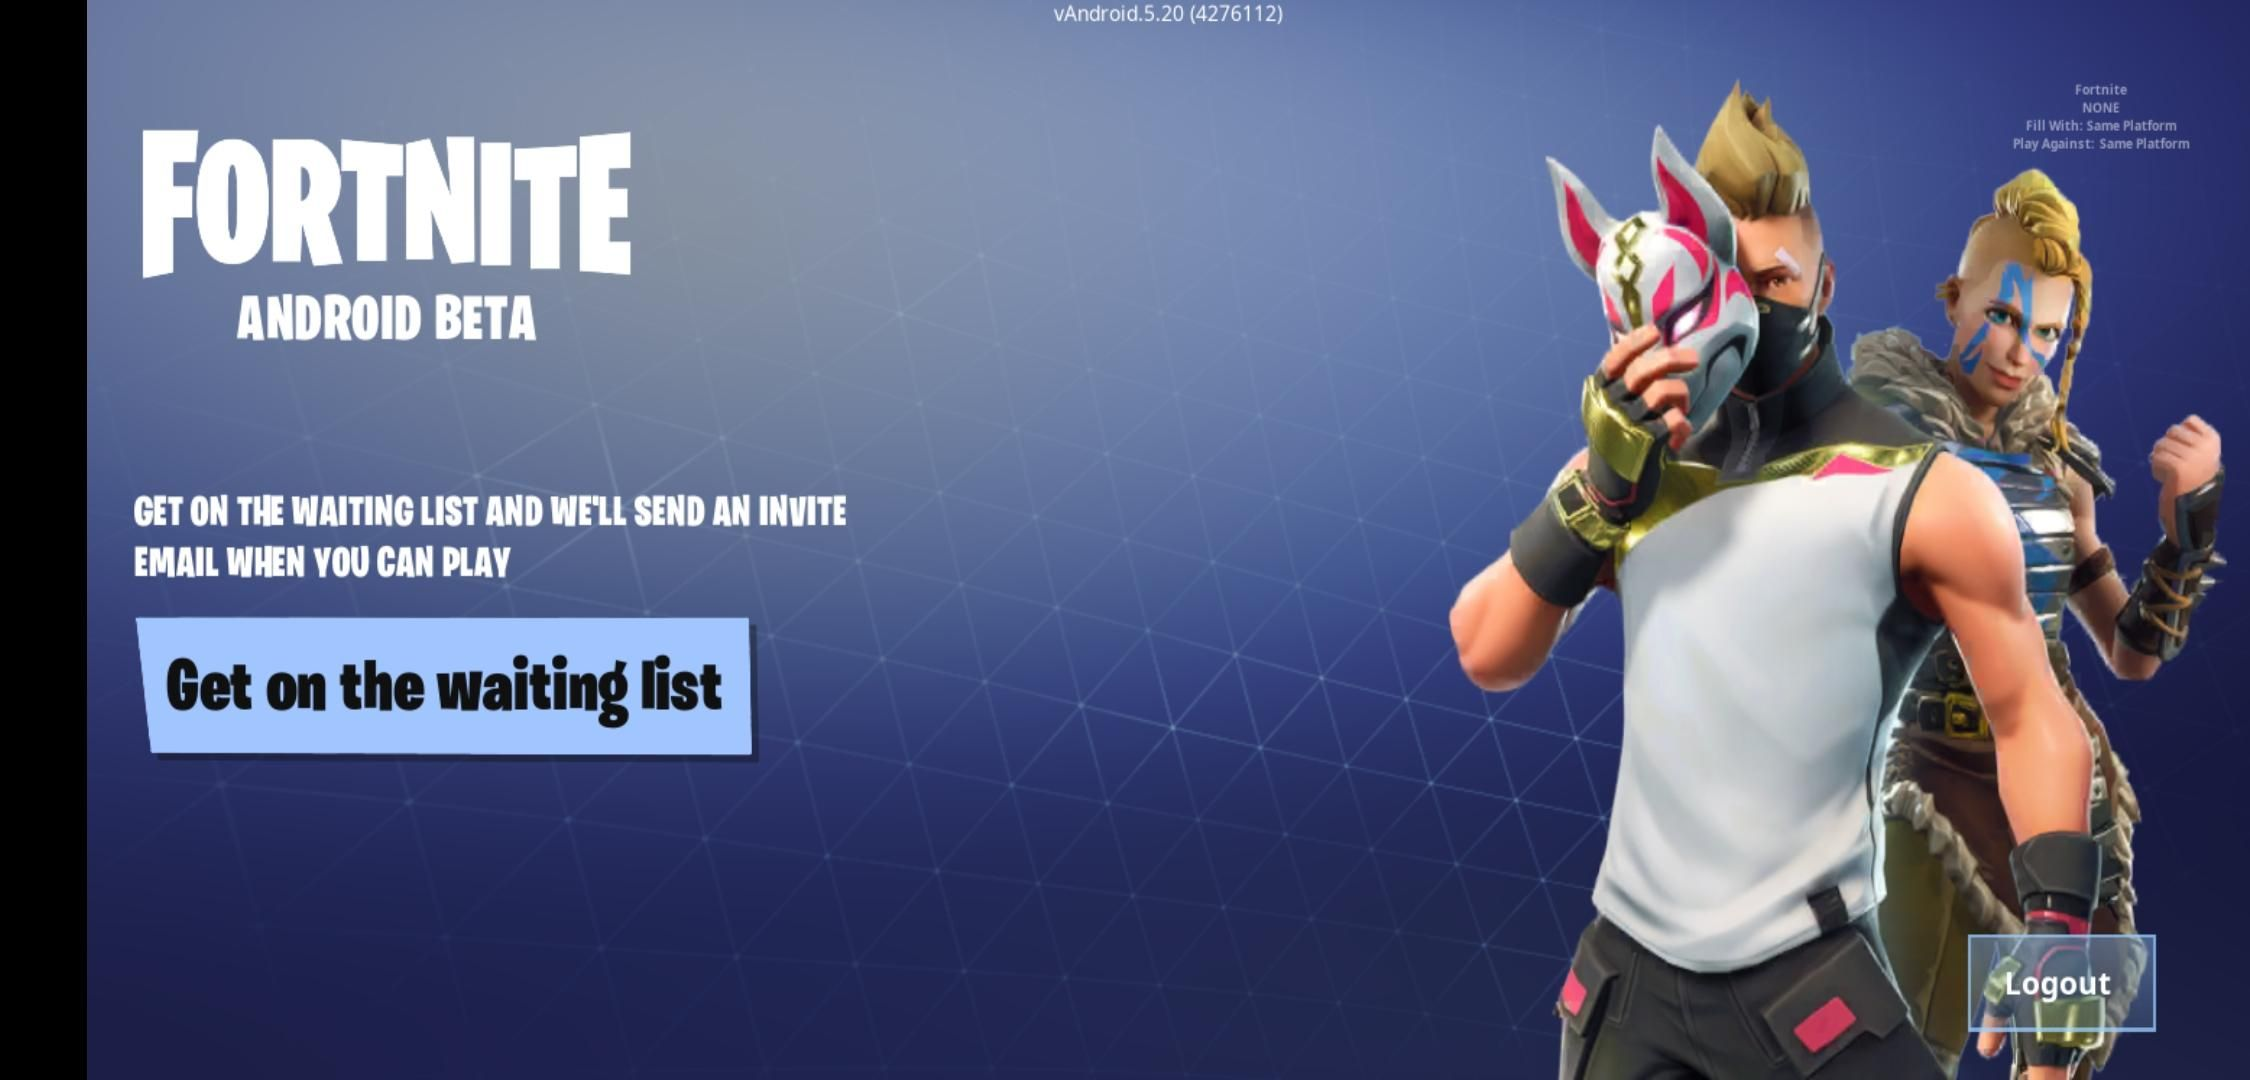 Download Fortnite Mobile Android APK Latest Version Free